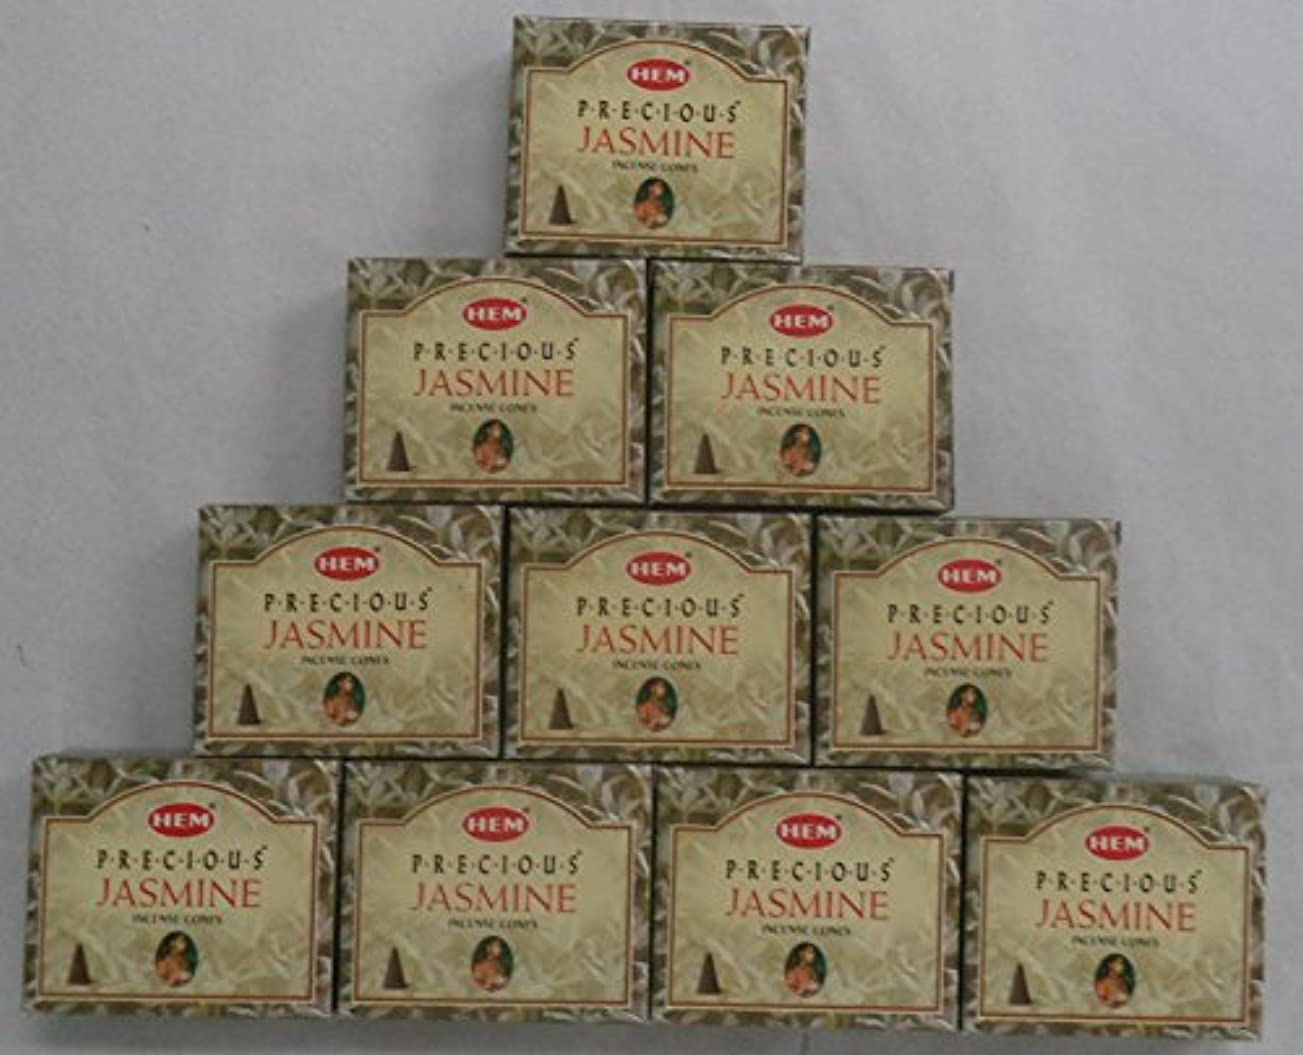 受付陰気ゆるくHEM Incense Cones: Precious Jasmine - 10 Packs of 10 = 100 Cones by Hem